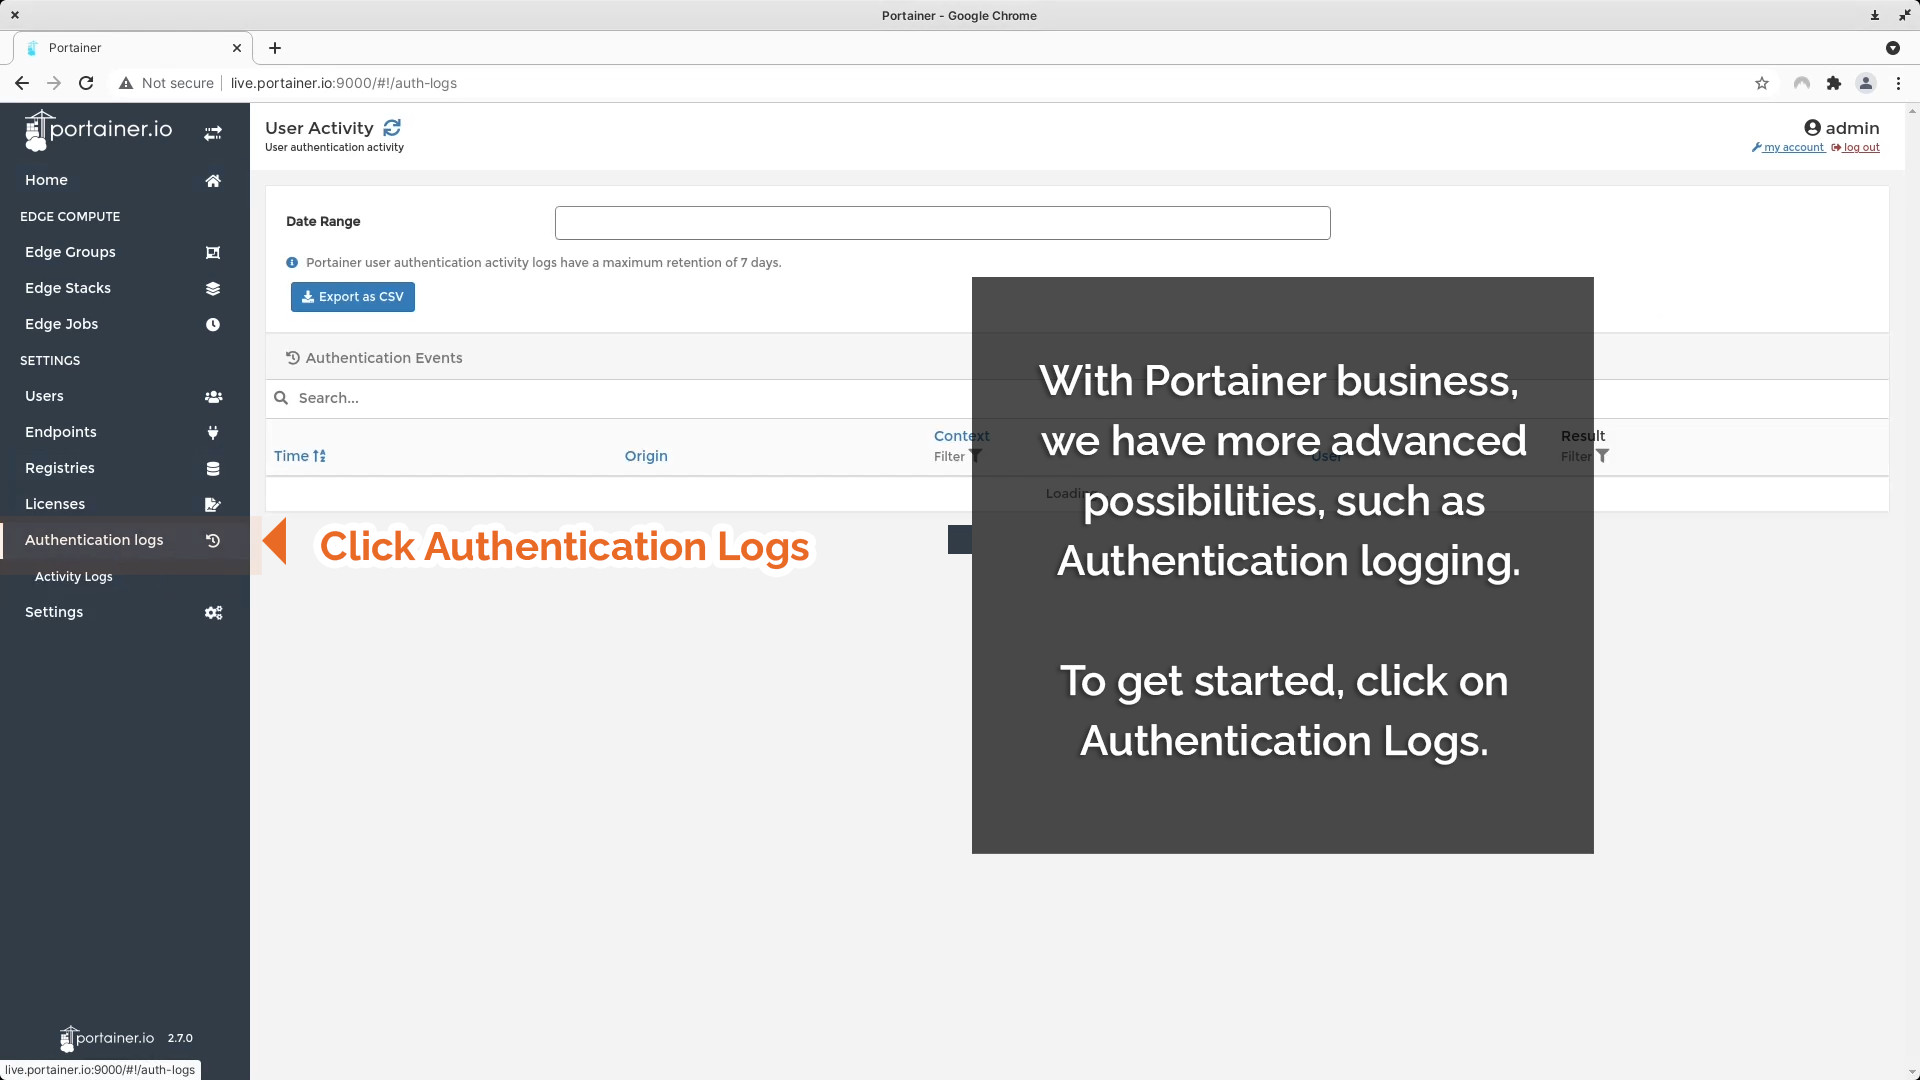 Click Authentication Logs to access log.